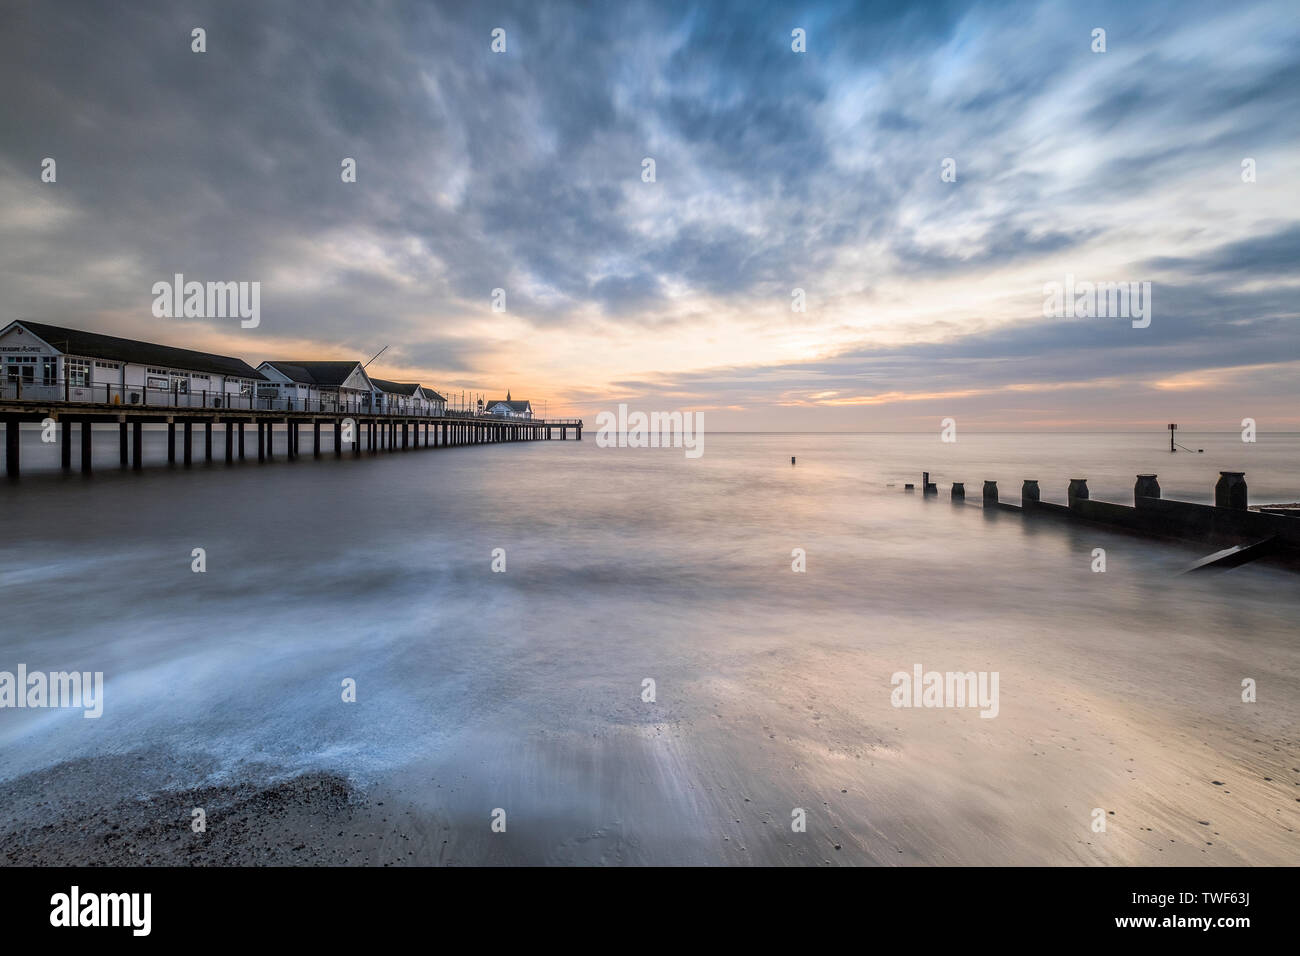 Southwold pier in Suffolk looking in between one of the sea defences on the sandy beach. - Stock Image